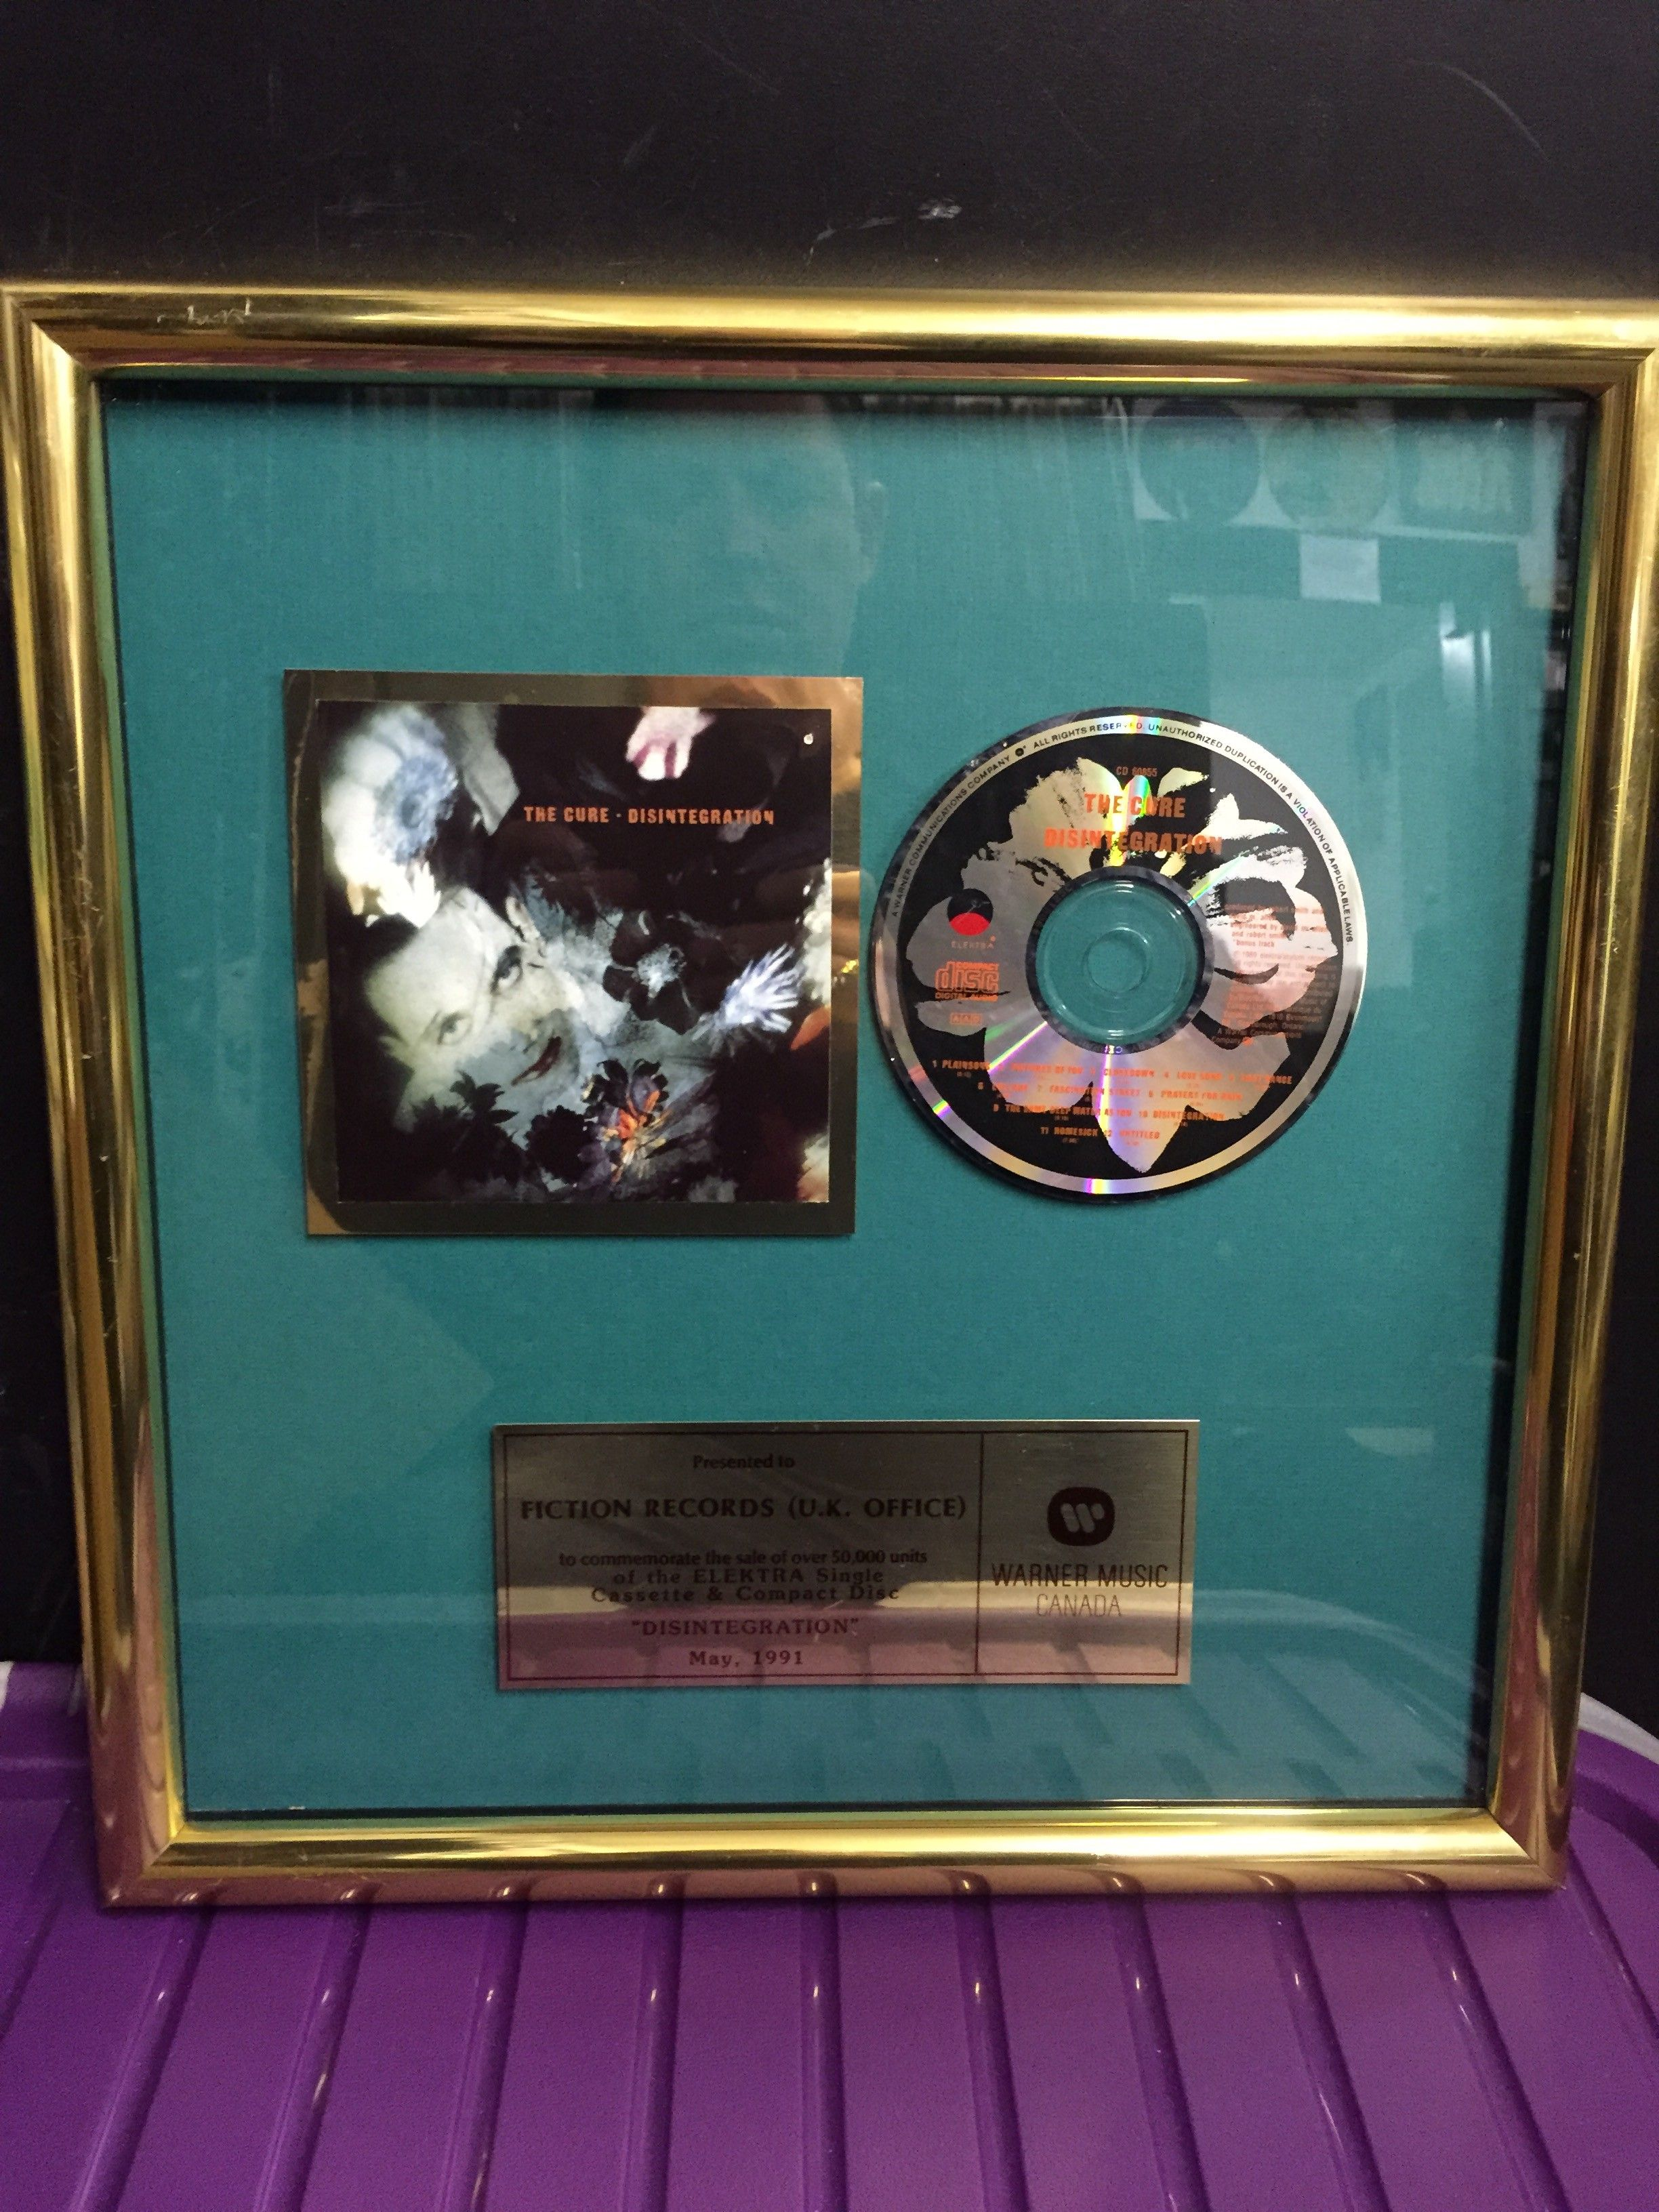 The Cure  Disintegration Cd Framed Presentation ( Compact Disc